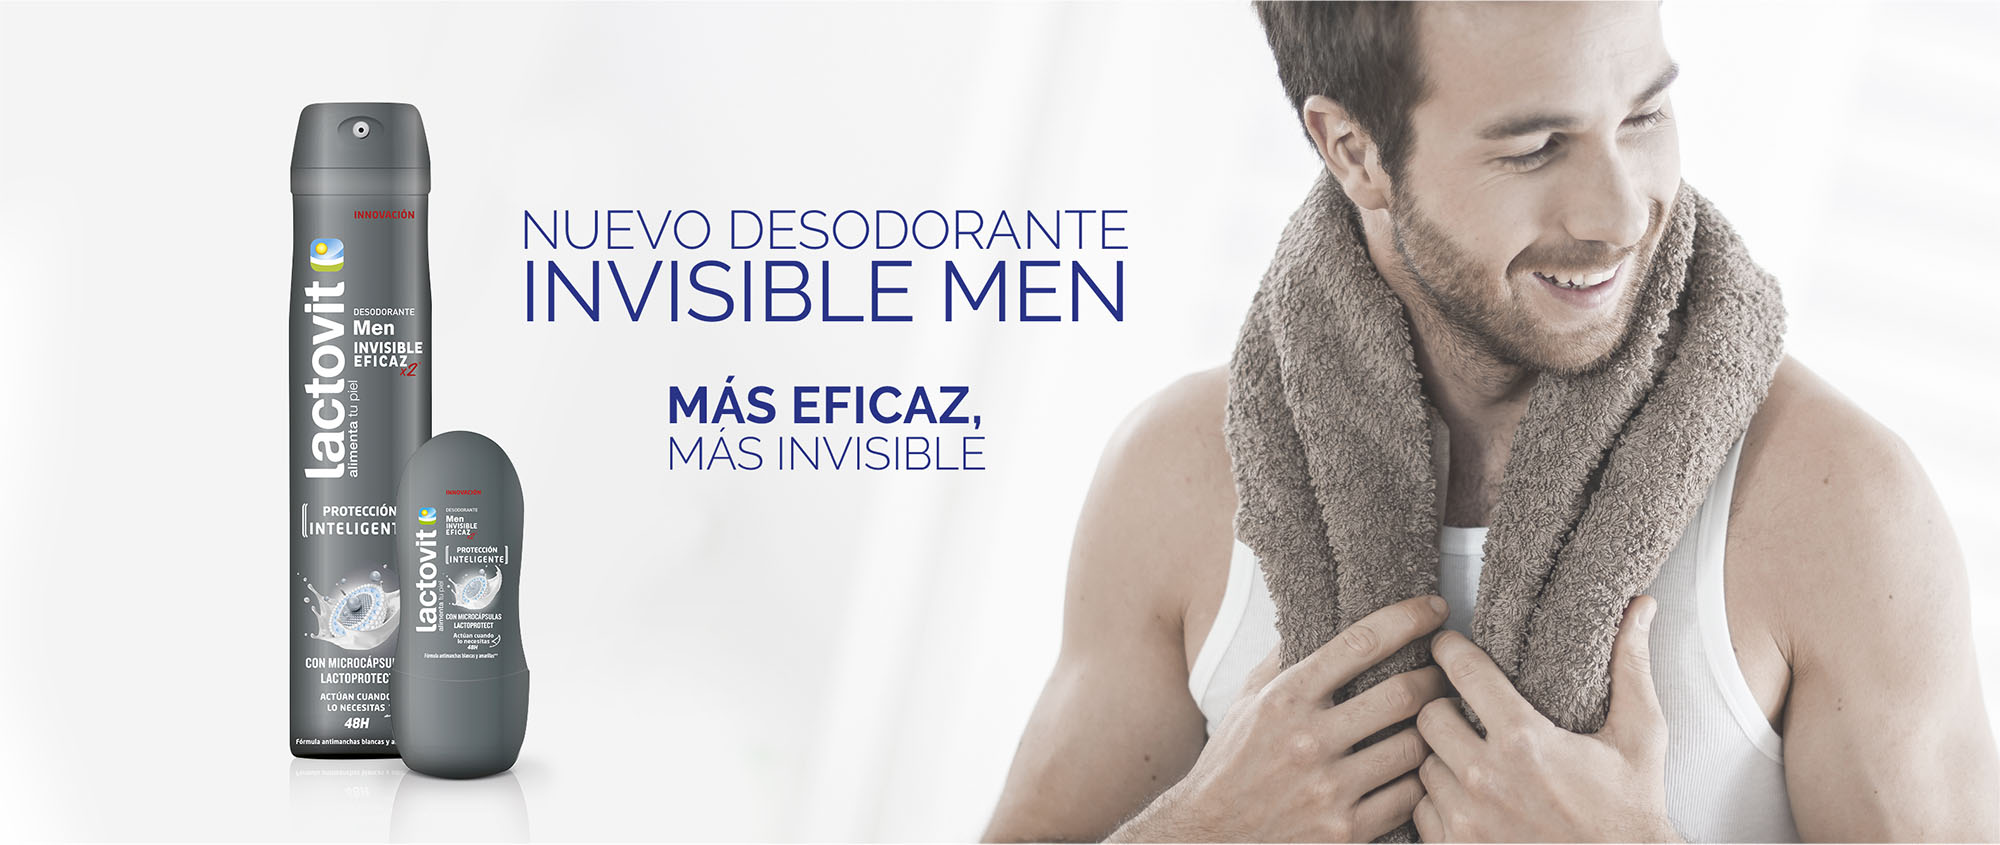 Nuevo Desodorante Invisible Men